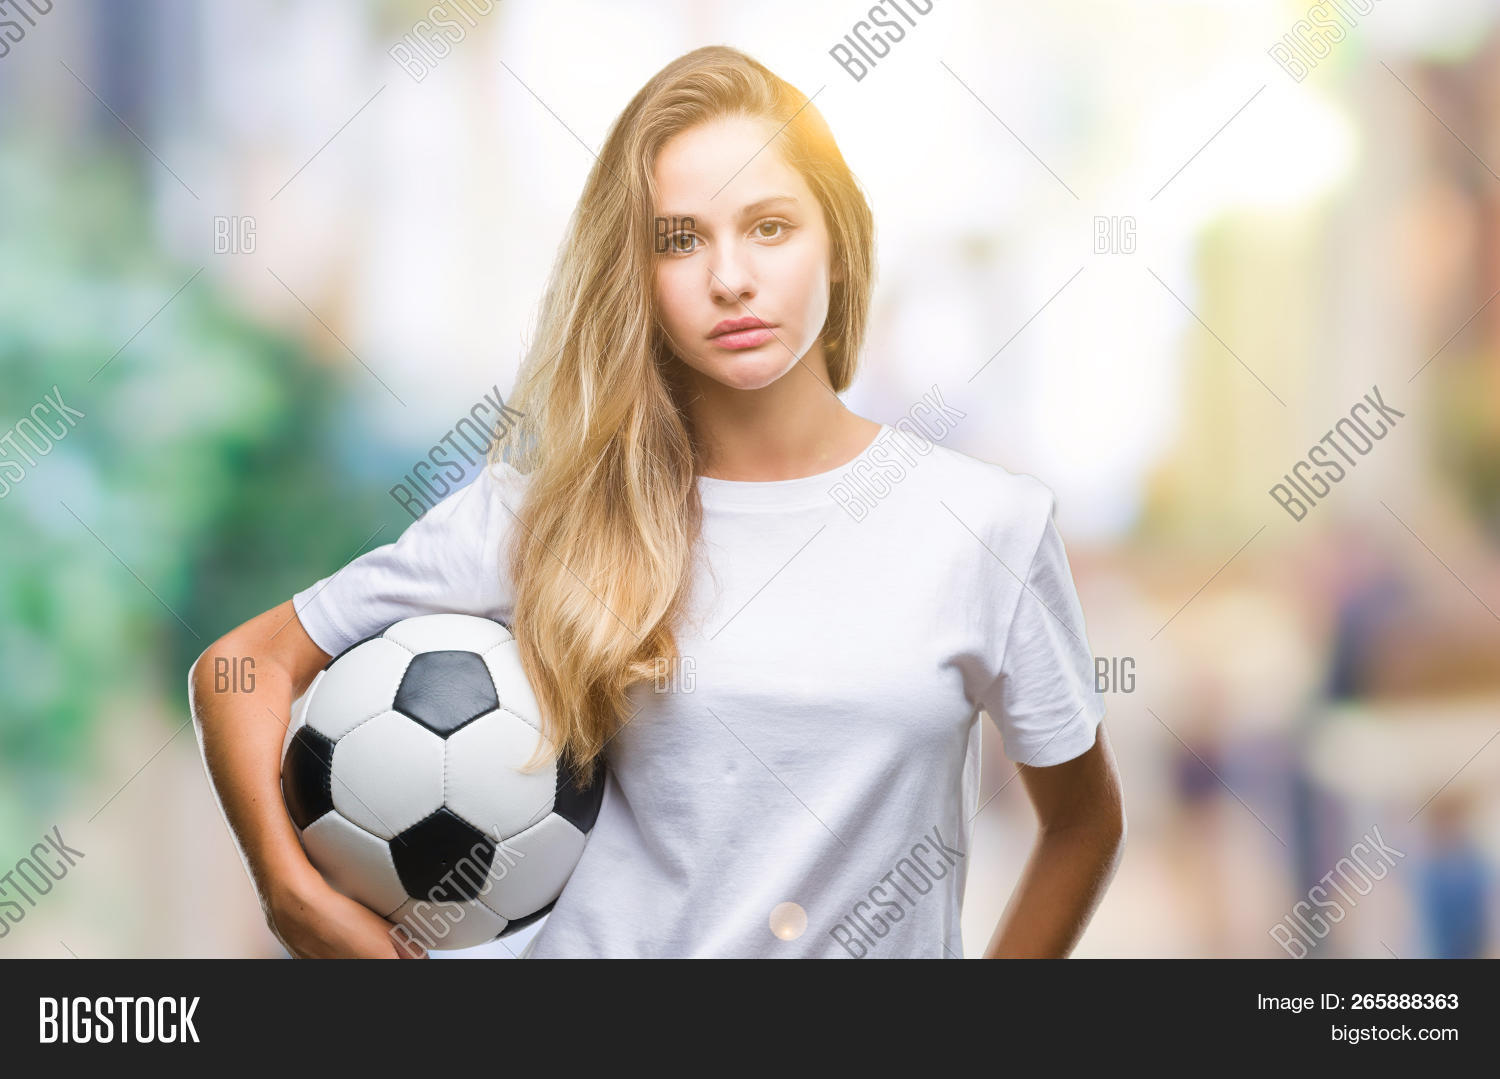 d4424dd5d Young beautiful blonde woman holding soccer ball over isolated background  with a confident expression on smart